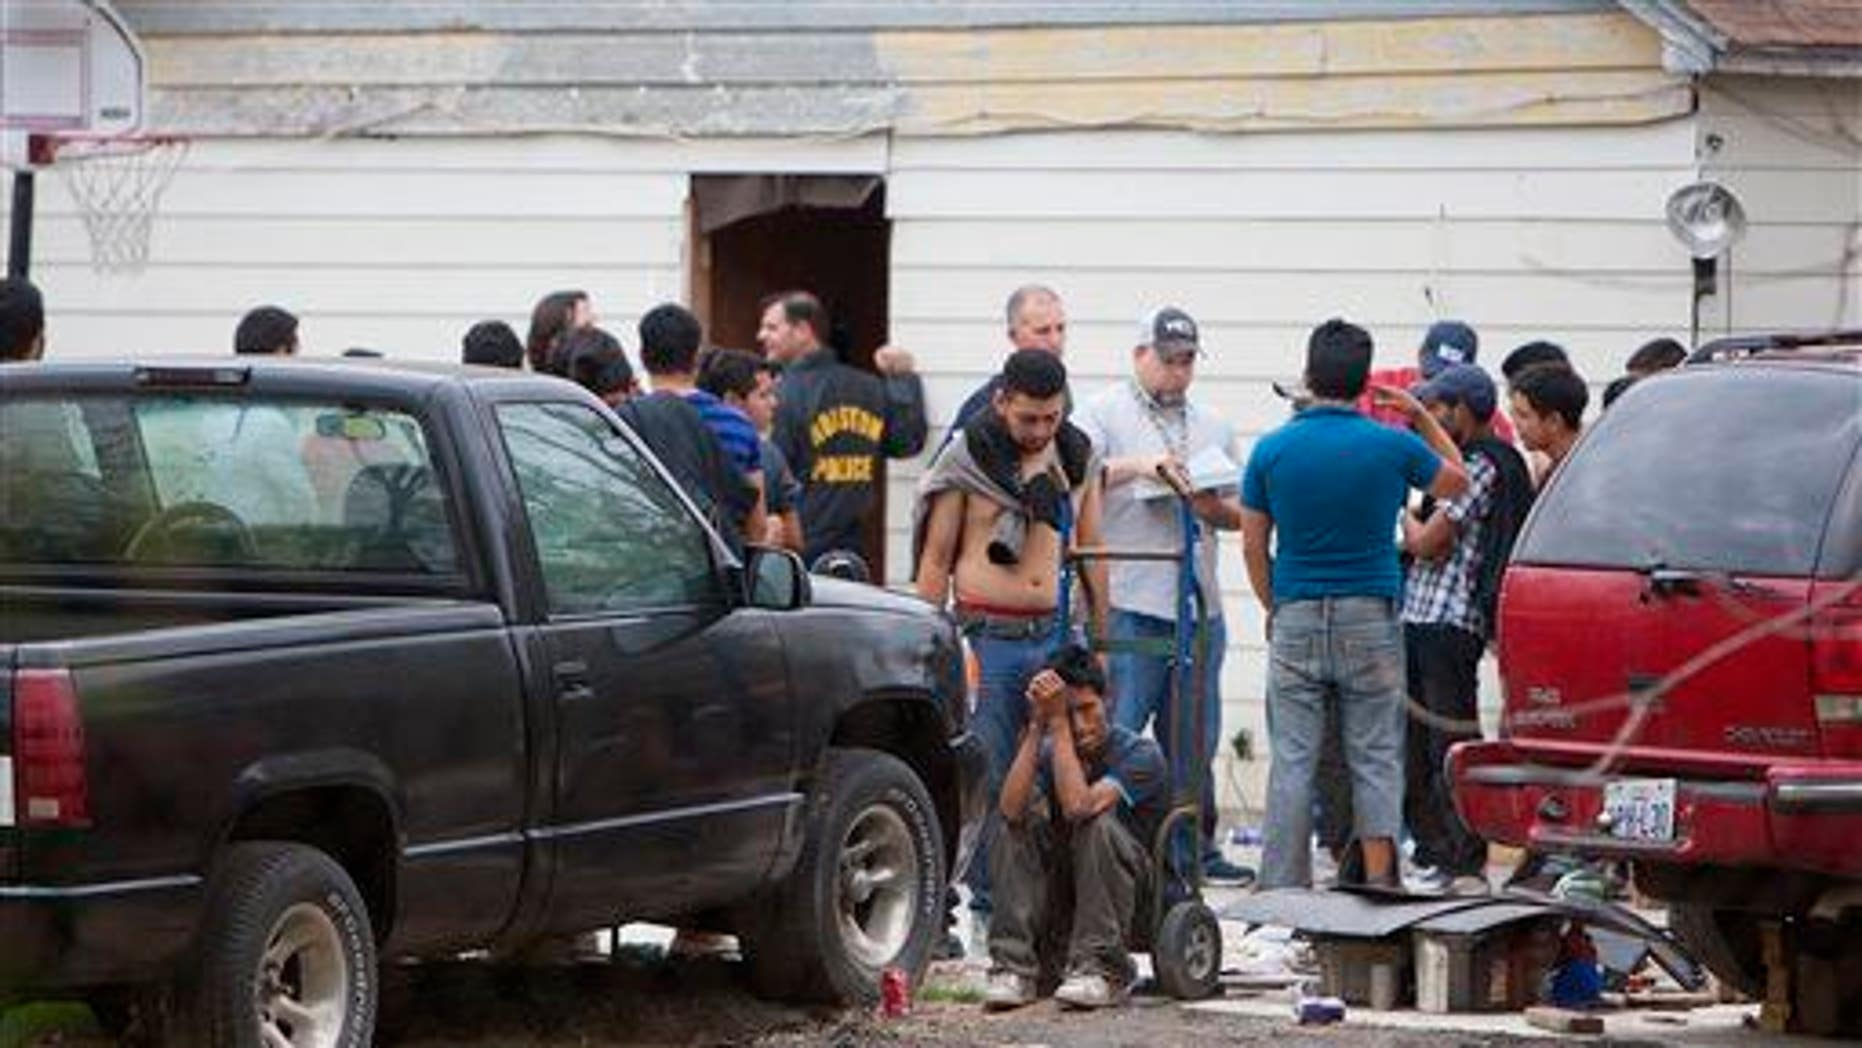 People wait outside a house, Wednesday, March 19, 2014, in southeast Houston.